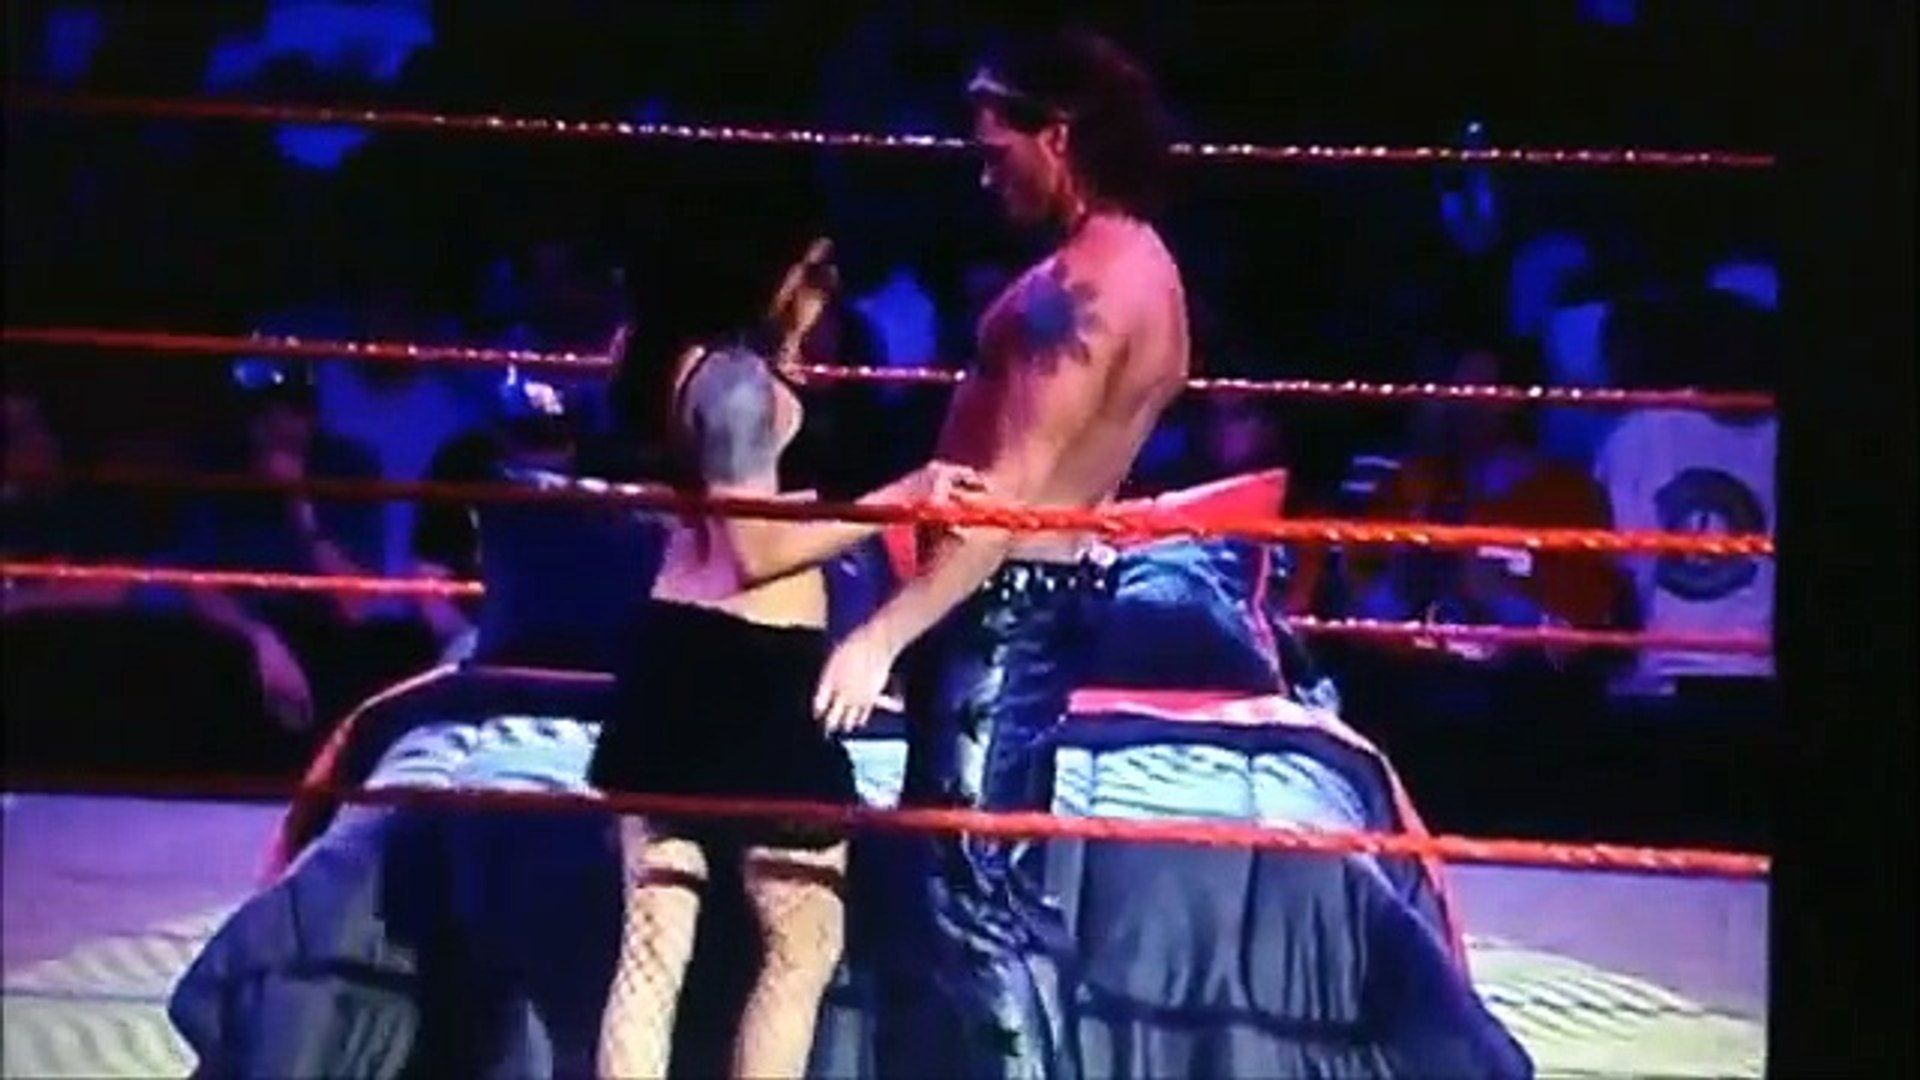 Edge And Lita In Bed In The Ring Full Youtube Video